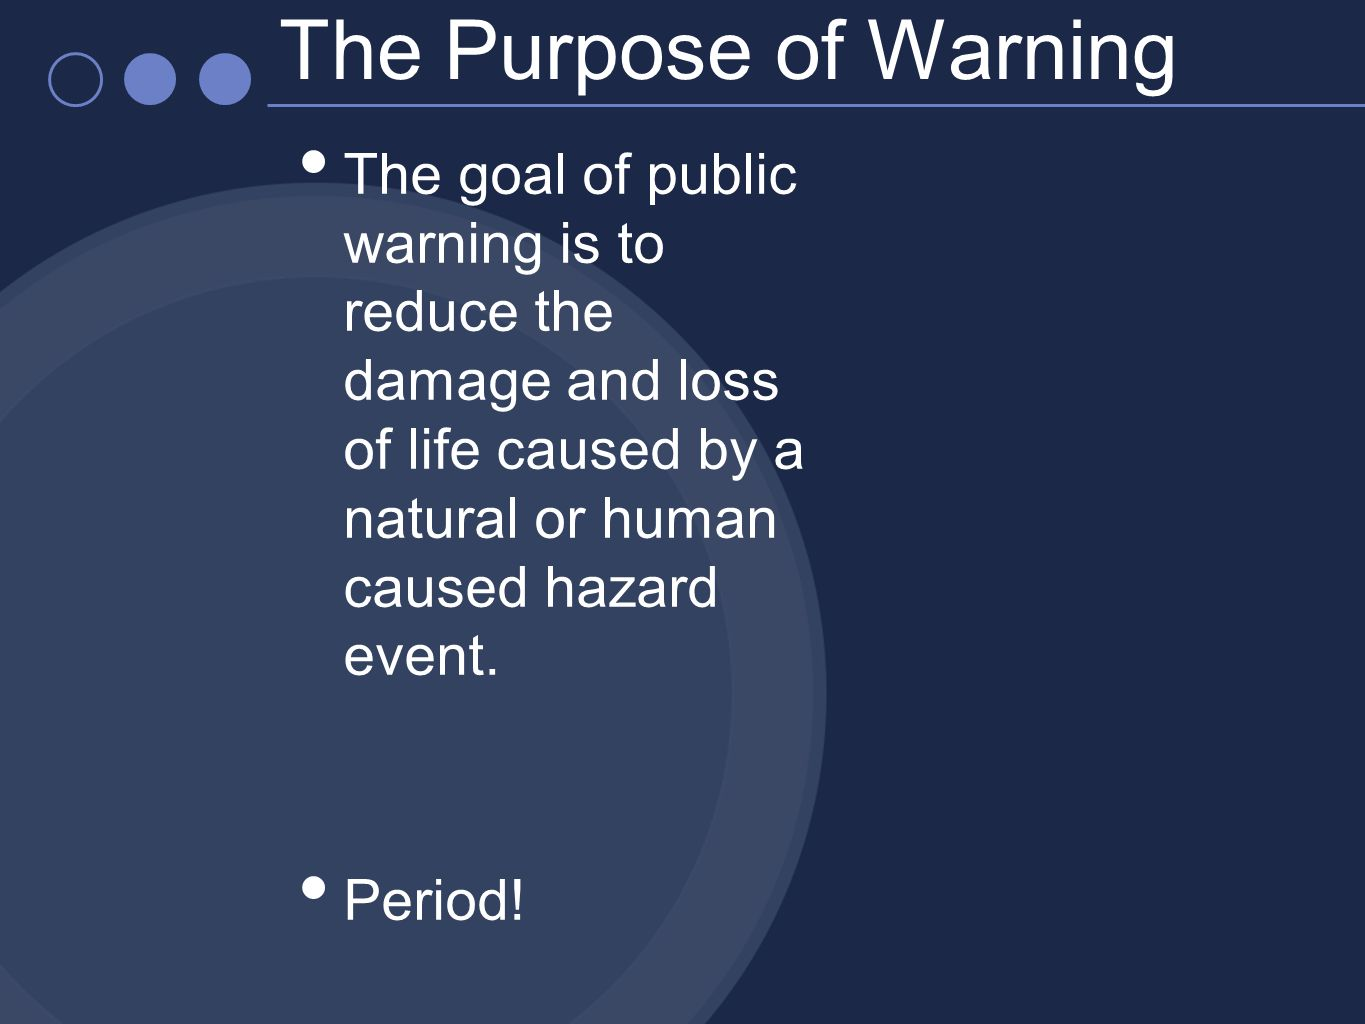 The Purpose of Warning The goal of public warning is to reduce the damage and loss of life caused by a natural or human caused hazard event.